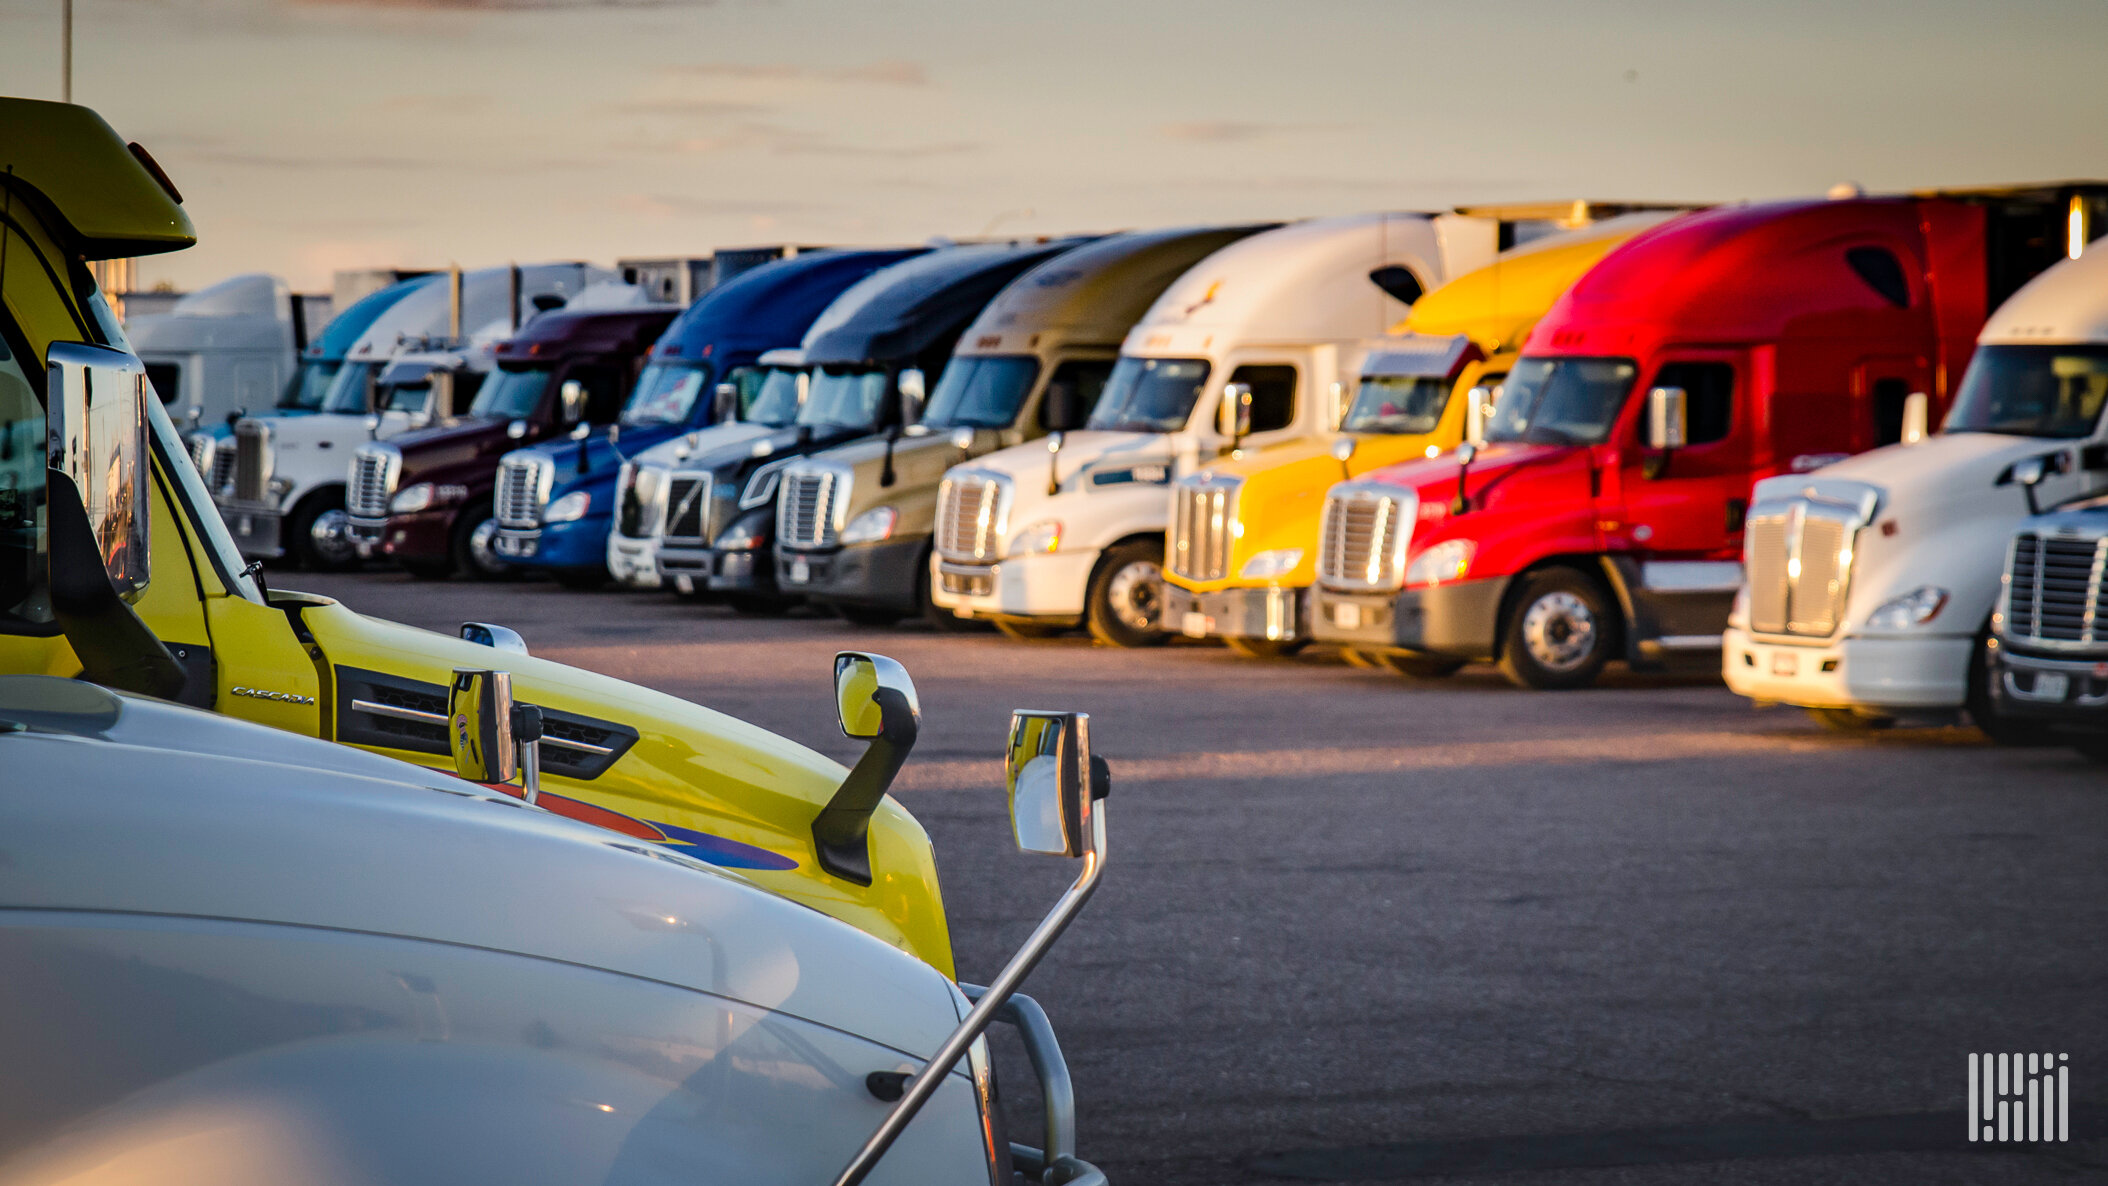 Providing access to safe truck parking can be a driver retention strategy for some fleets. TruckPark is hoping its new Enterprise Booking System (EBS) tool will be used by fleets to provide truck parking for their drivers. (Photo: Jim Allen/FreightWaves)